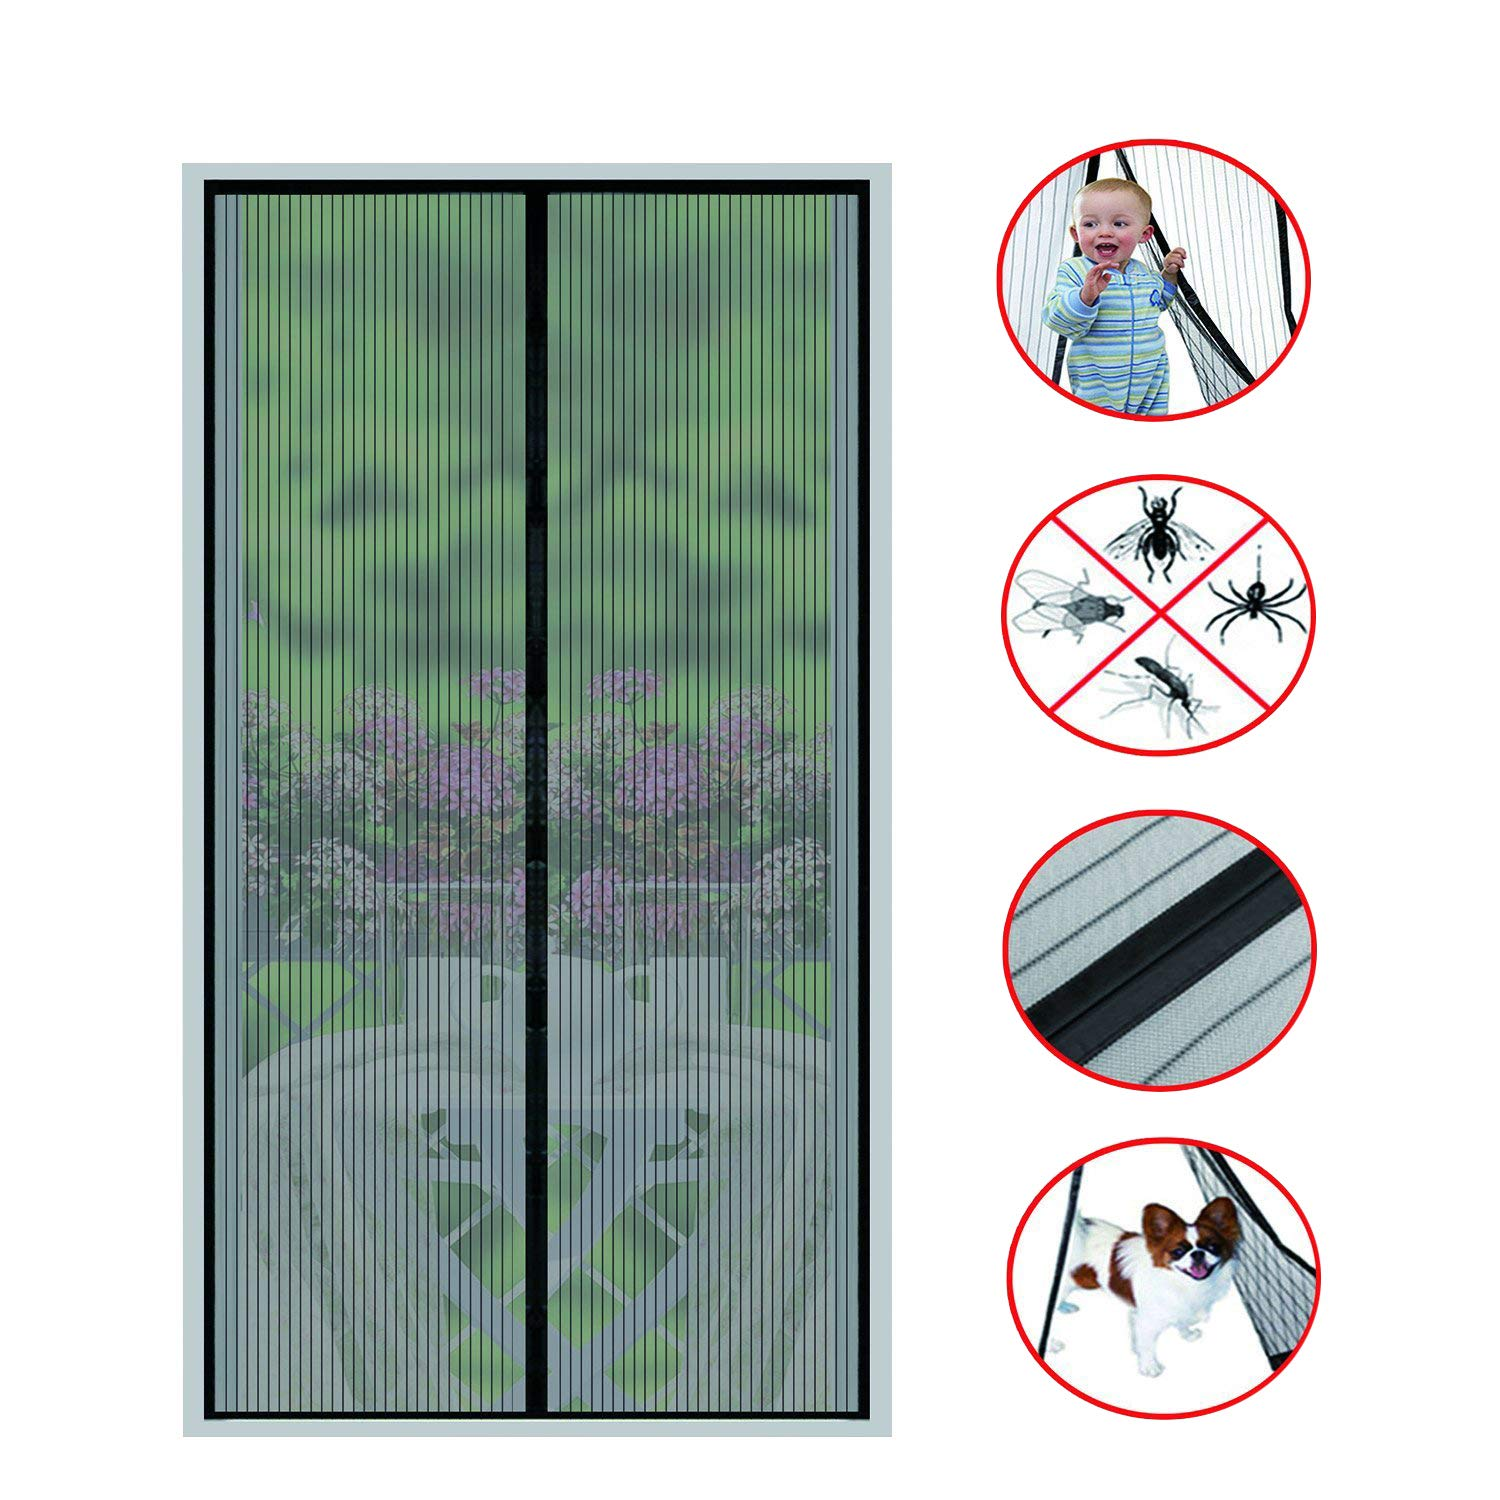 Magnetic Screen Door(2018 NEW)-26 Strong Magnets-Full Frame Magic Adhesive-Easy Open and Close Design-Fresh Air In-Keep Mosquitoes Out-Pet Friendly-Hands Free-Fits Door Size up to 34 X 82 Inches